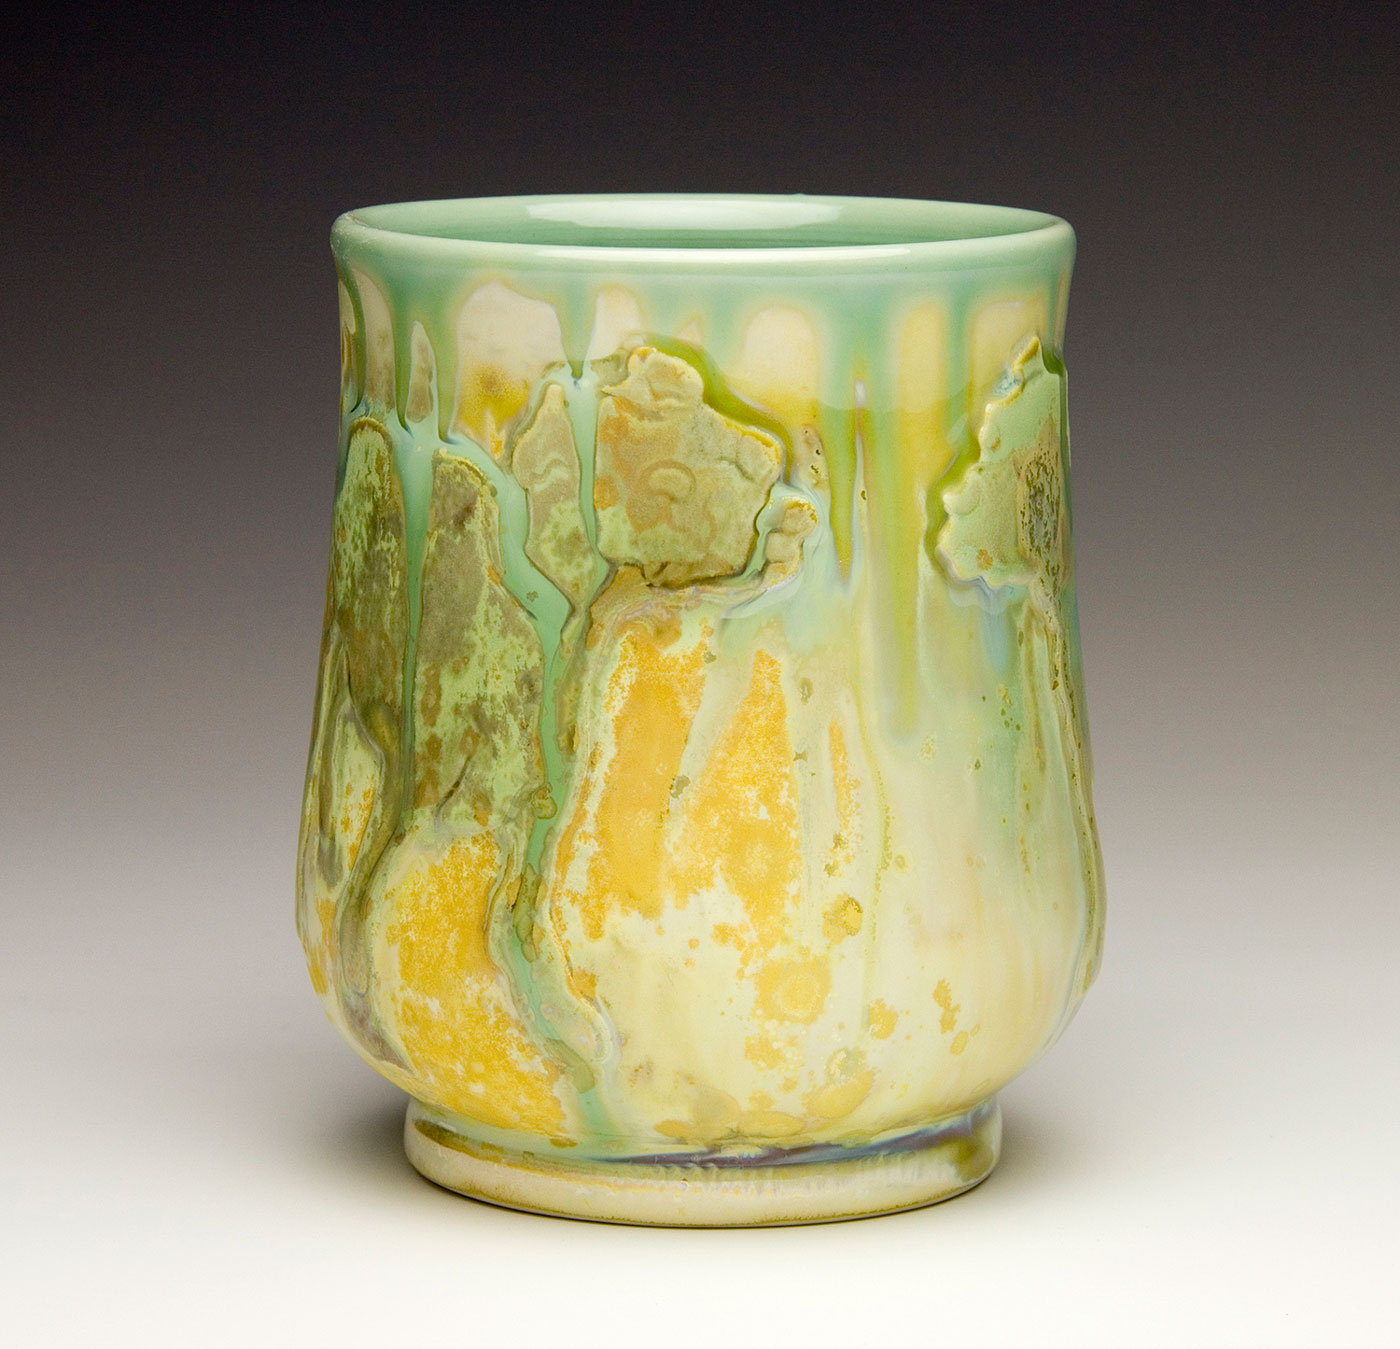 Drinking-cup-with-dog-contemporary-ceramic-Samantha-Henneke-North-Carolina-Pottery.jpg